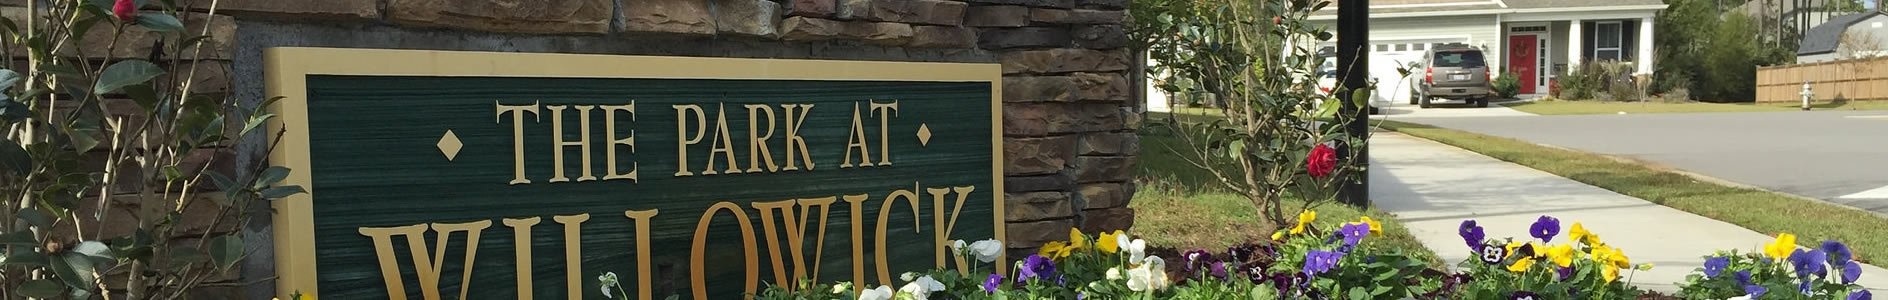 The entrance to The Park at Willowick in Wilmington